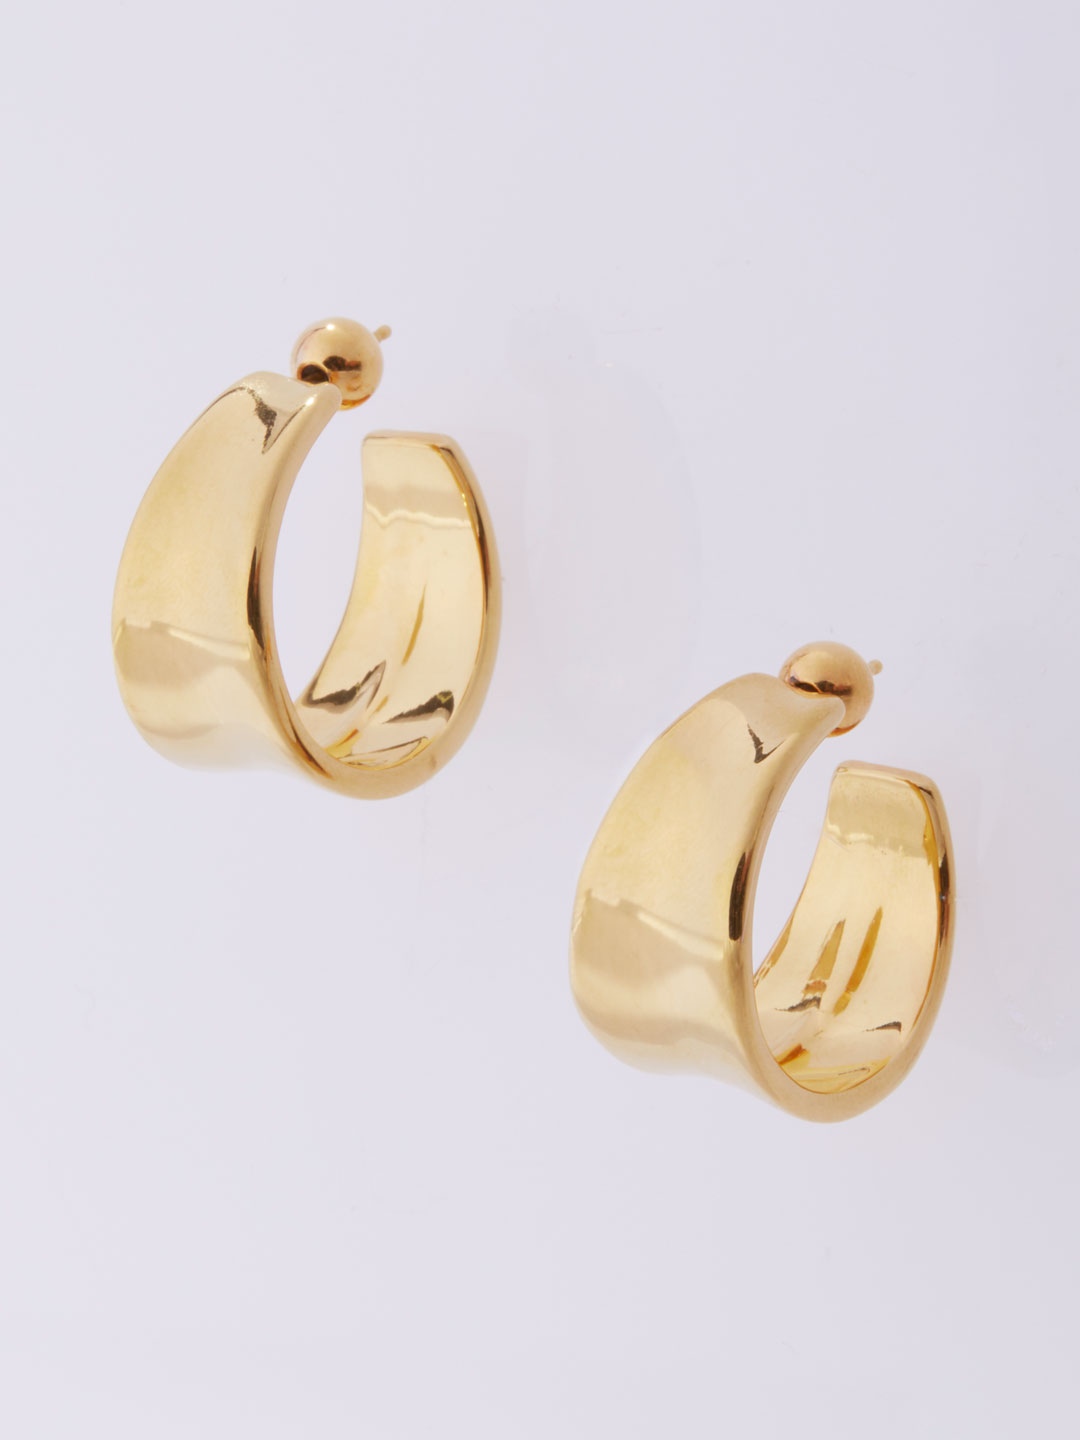 Gold Wave Hoops Pierced Earrings Large  - Gold